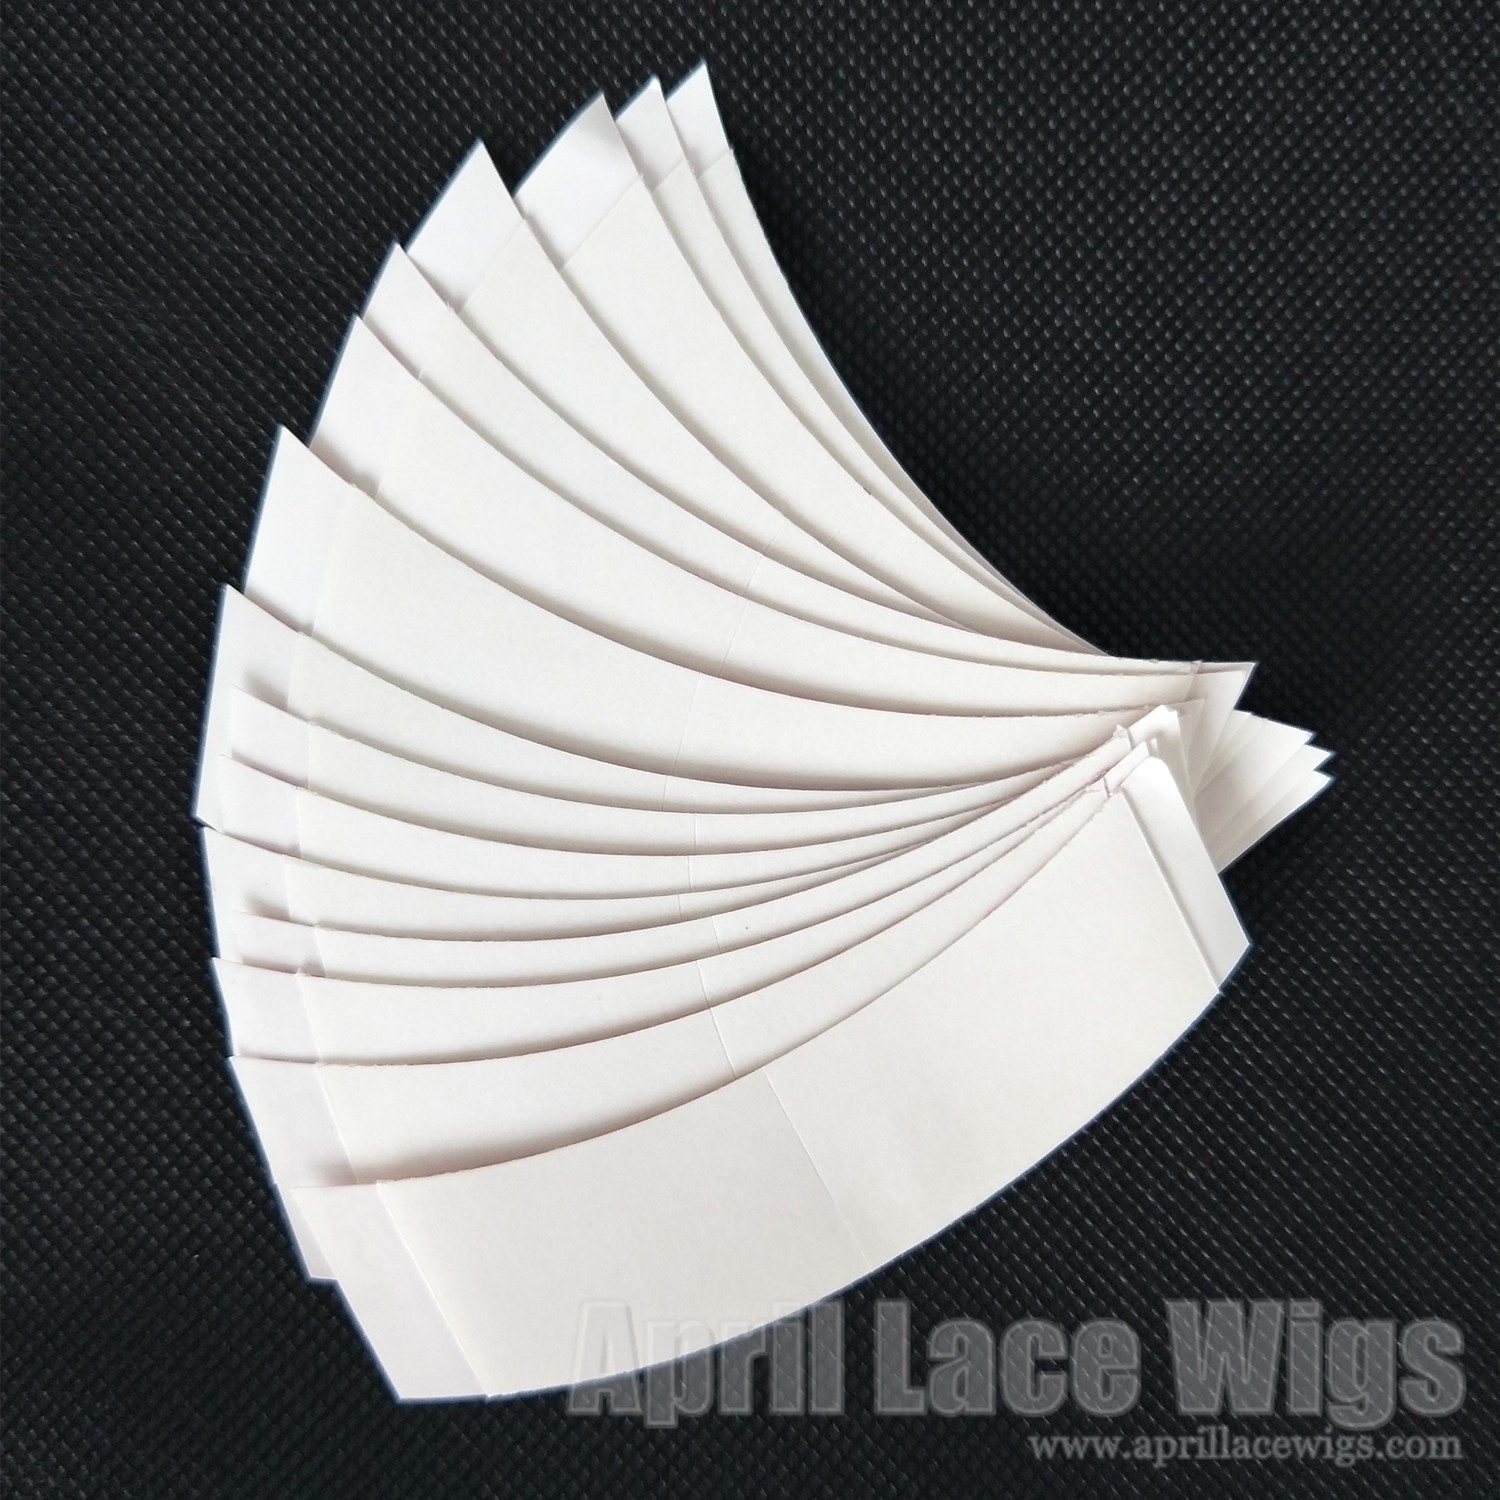 lace wig supertape,double sided tape stong hold